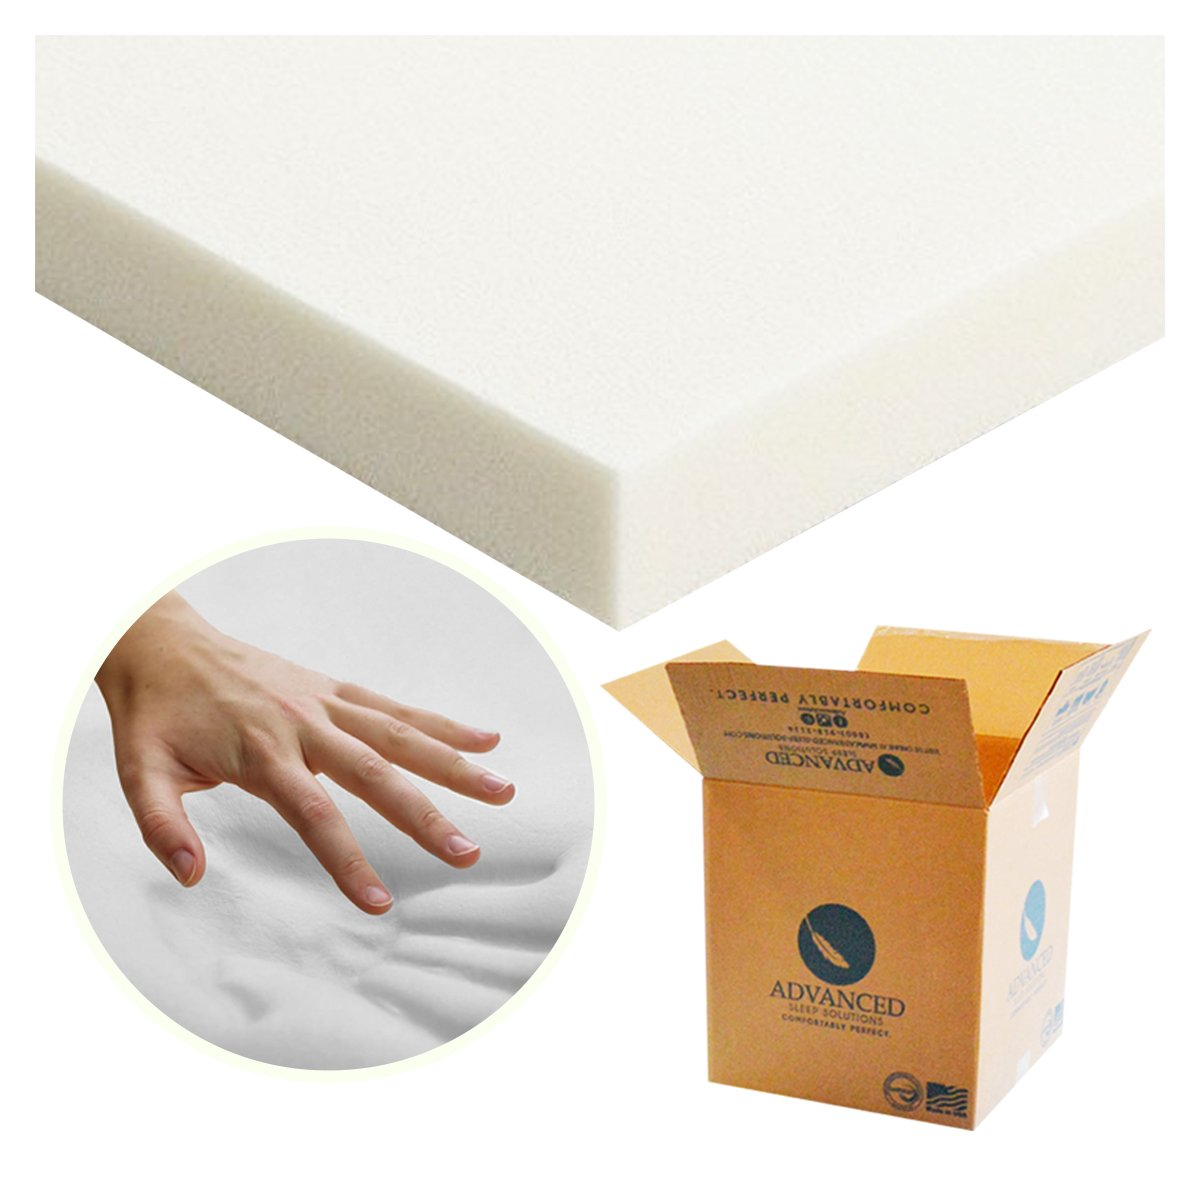 Advanced Sleep Solutions Memory Foam Mattress Topper Queen Size, 2 Inch Thick, Queen Sized Bed Pad, Medium Soft